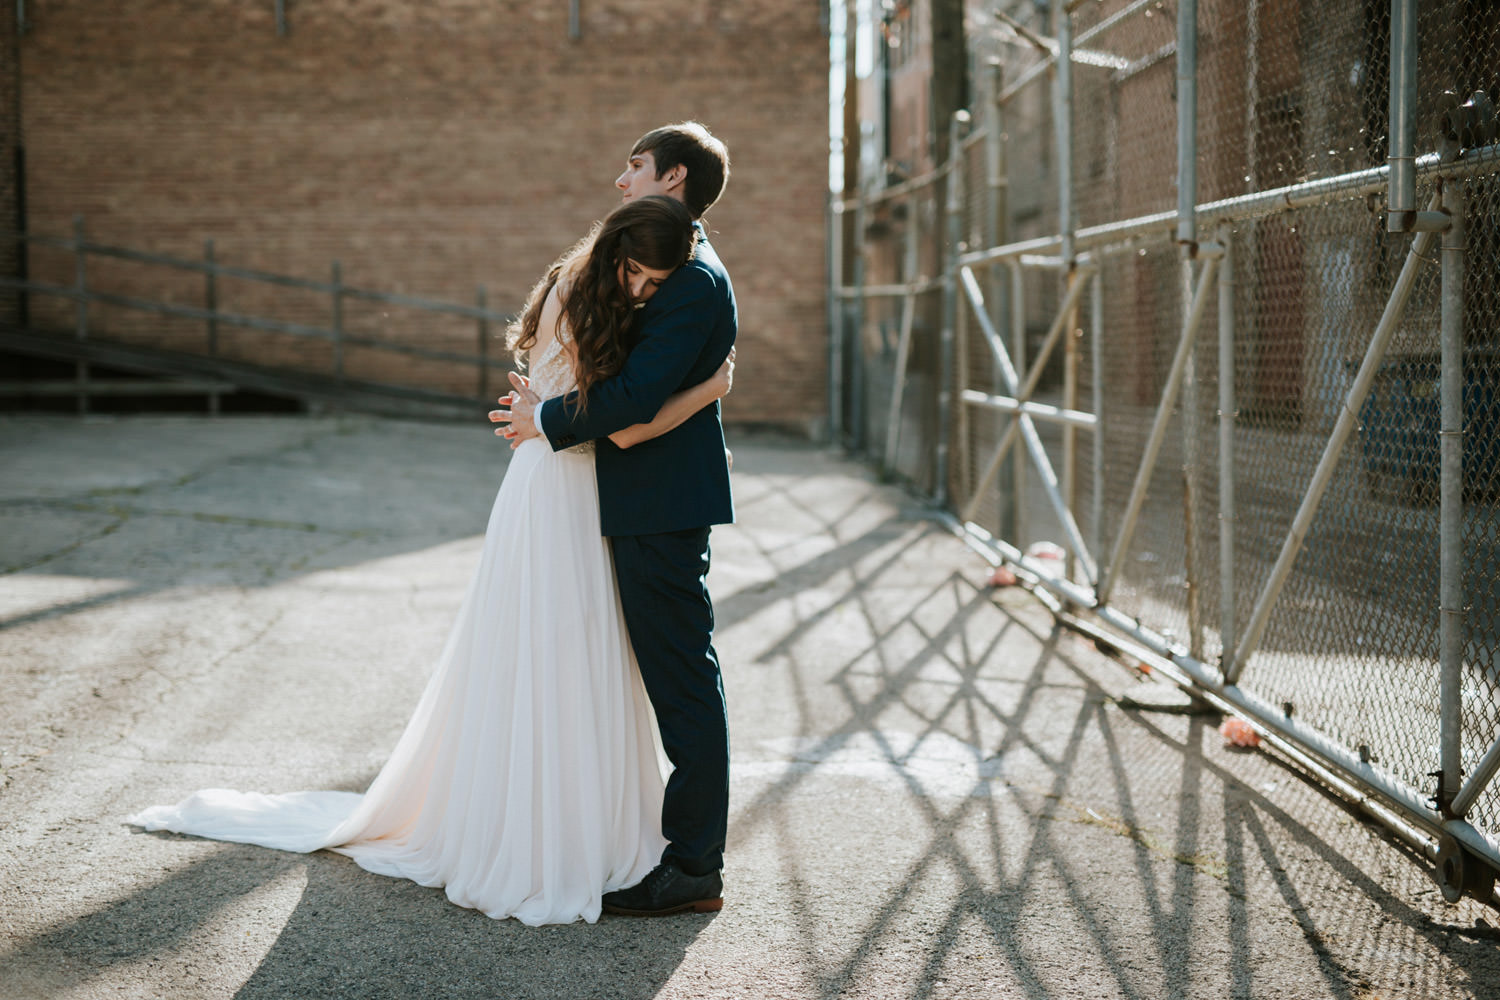 Bride and groom embrace during their wedding at west loop Chicago